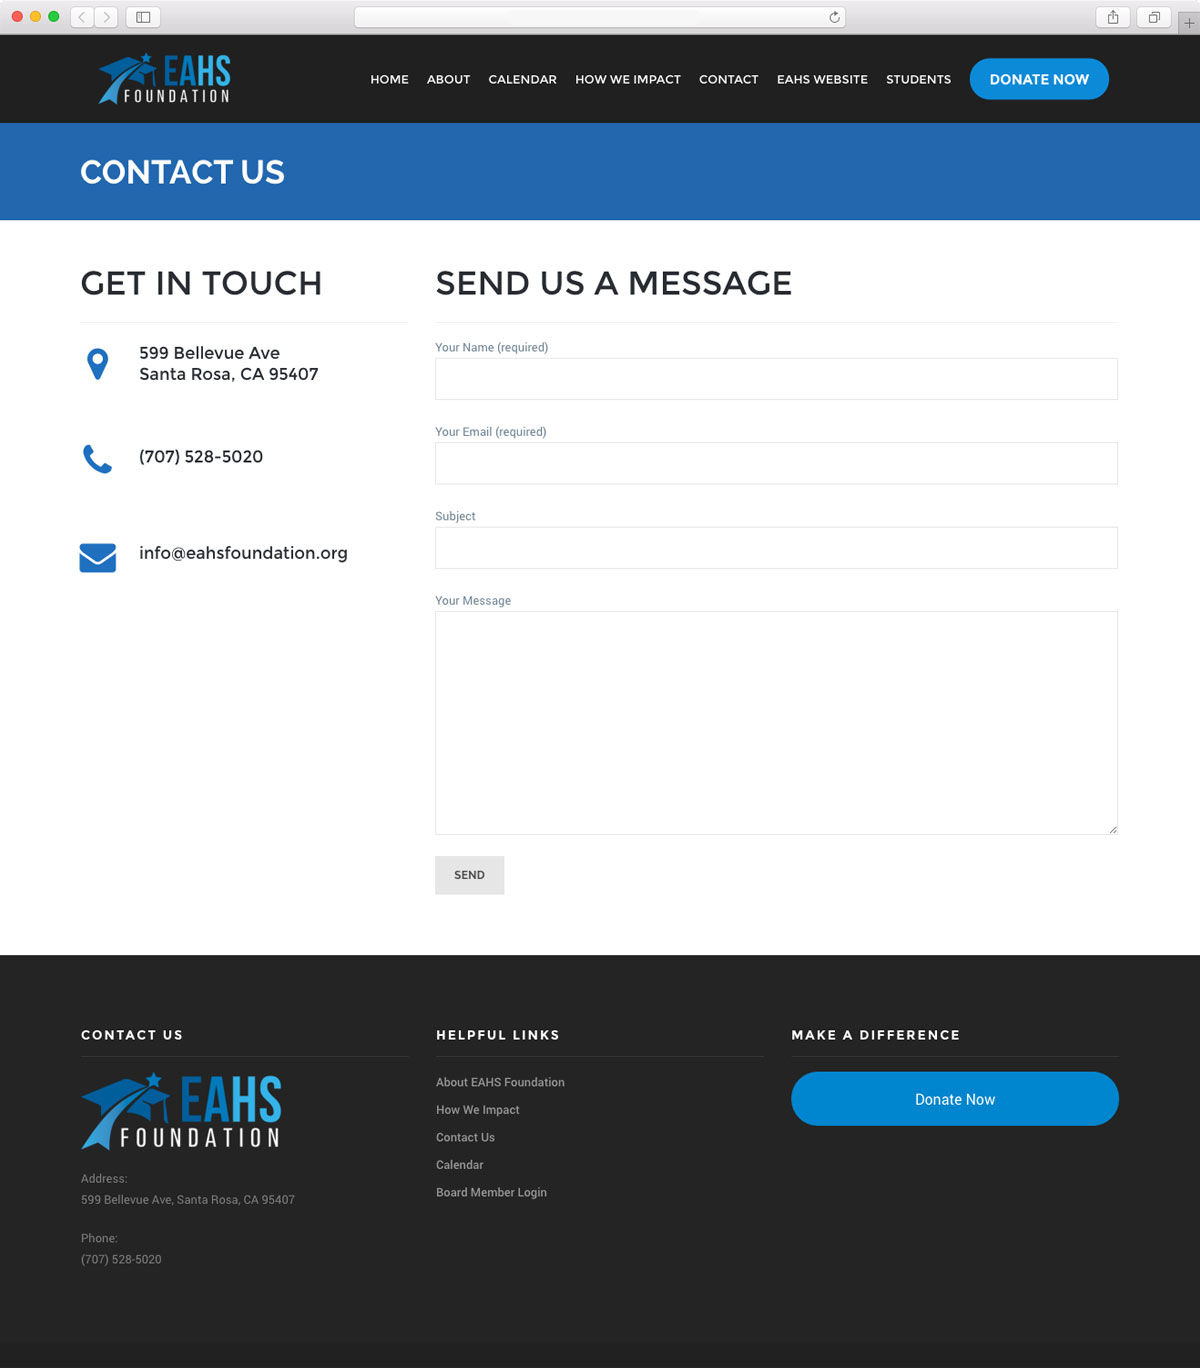 adept_website_mockup_eahsfoundation_contact